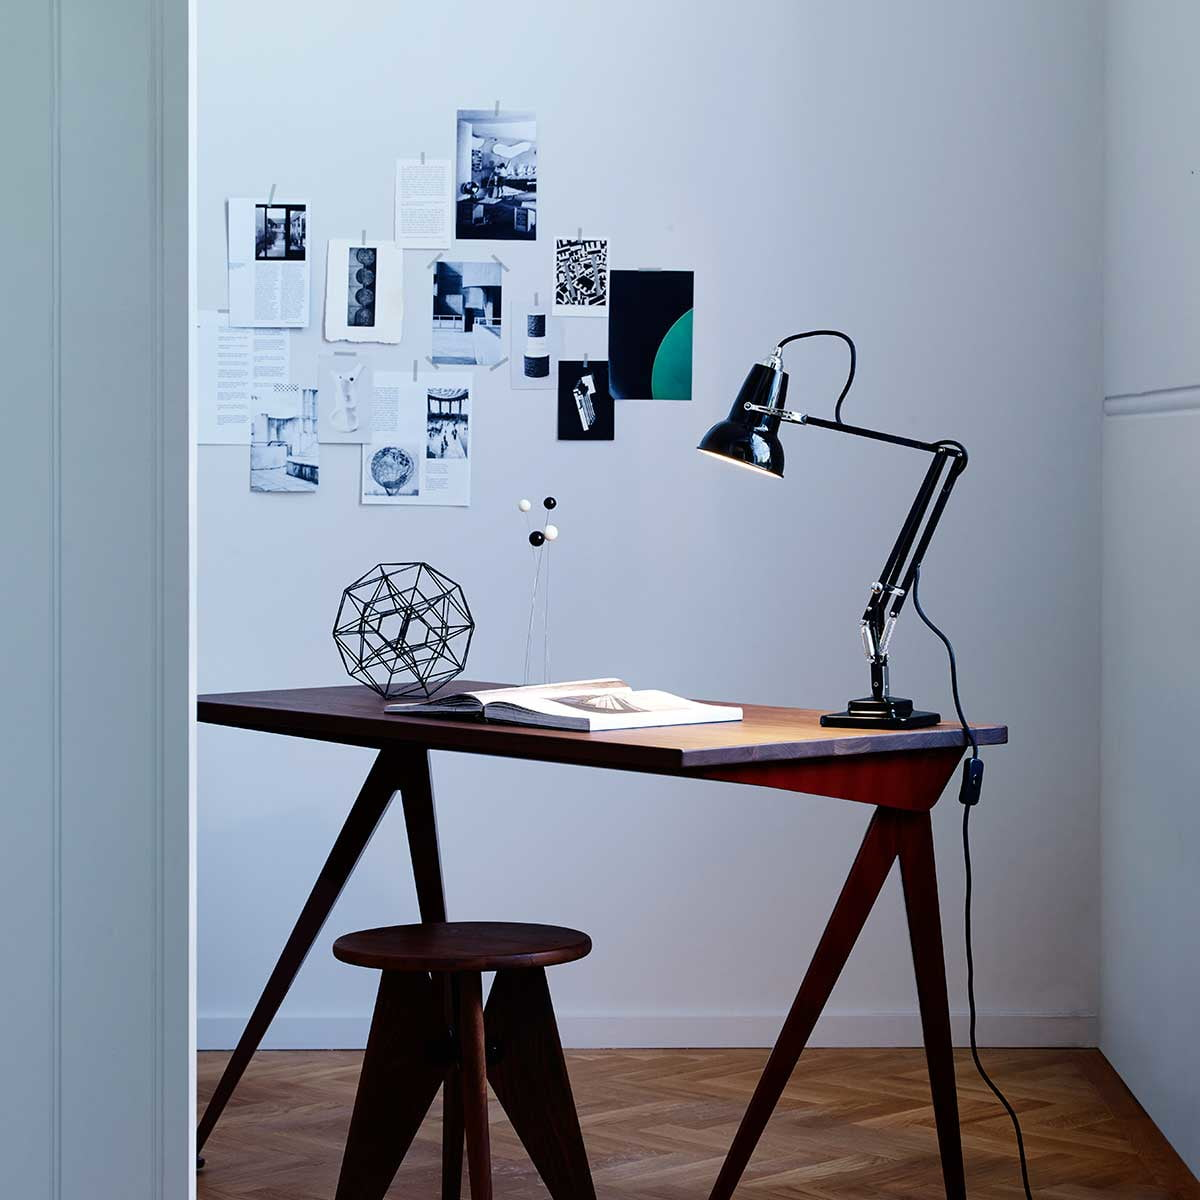 Type 1227 Table Lamp By Anglepoise